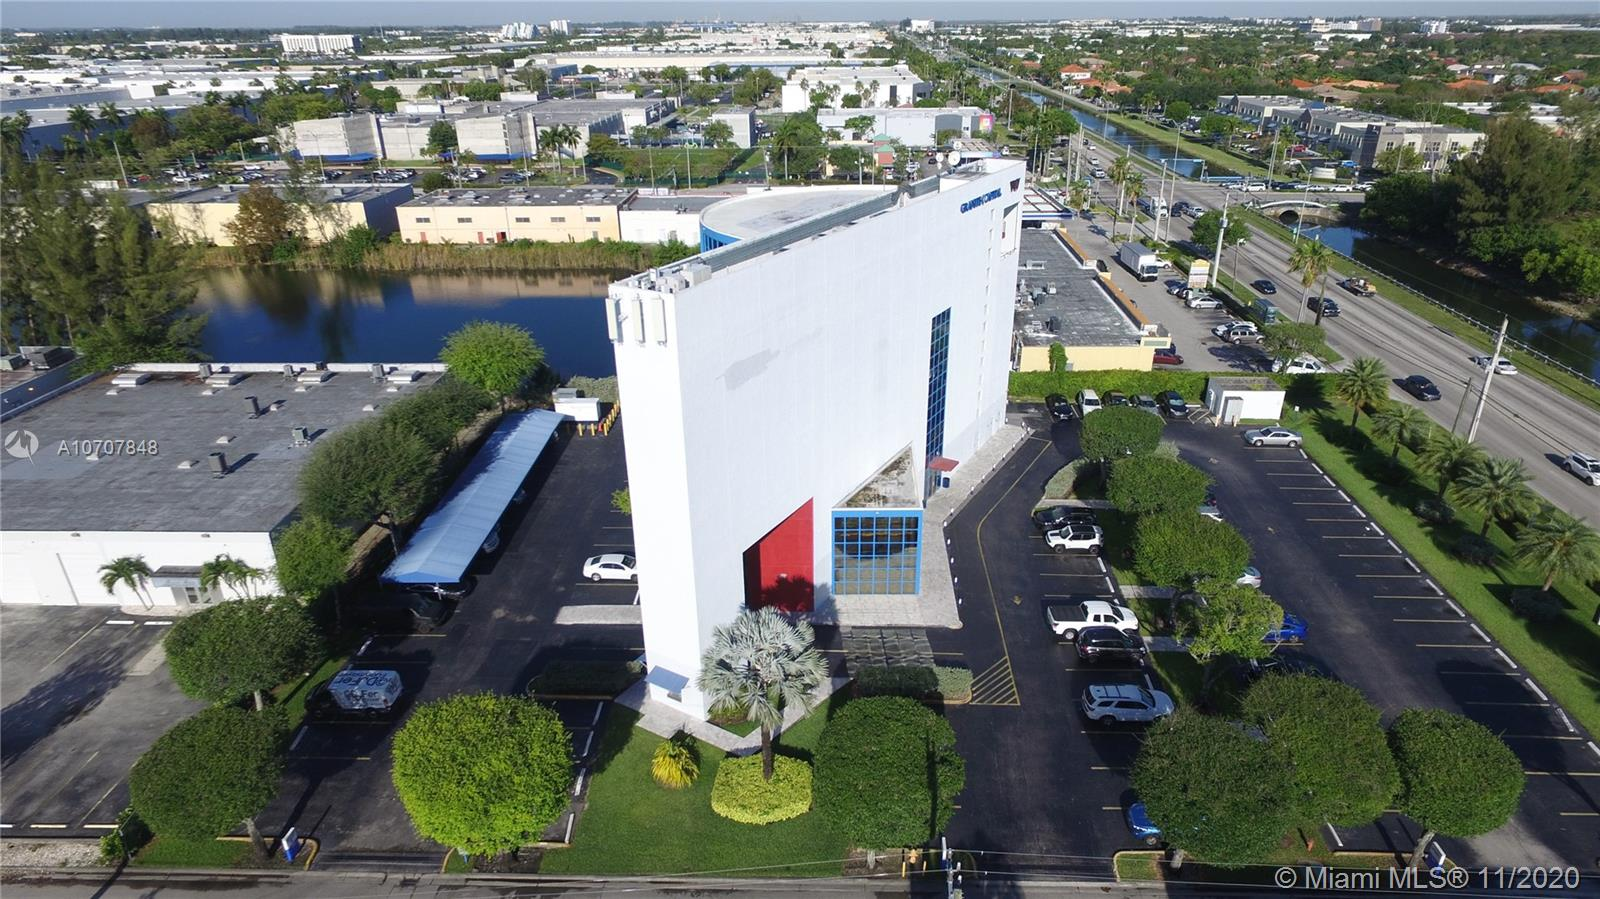 9600 NW 25th St # 5B, Doral, Florida 33172, ,Commercial Sale,For Sale,9600 NW 25th St # 5B,A10707848